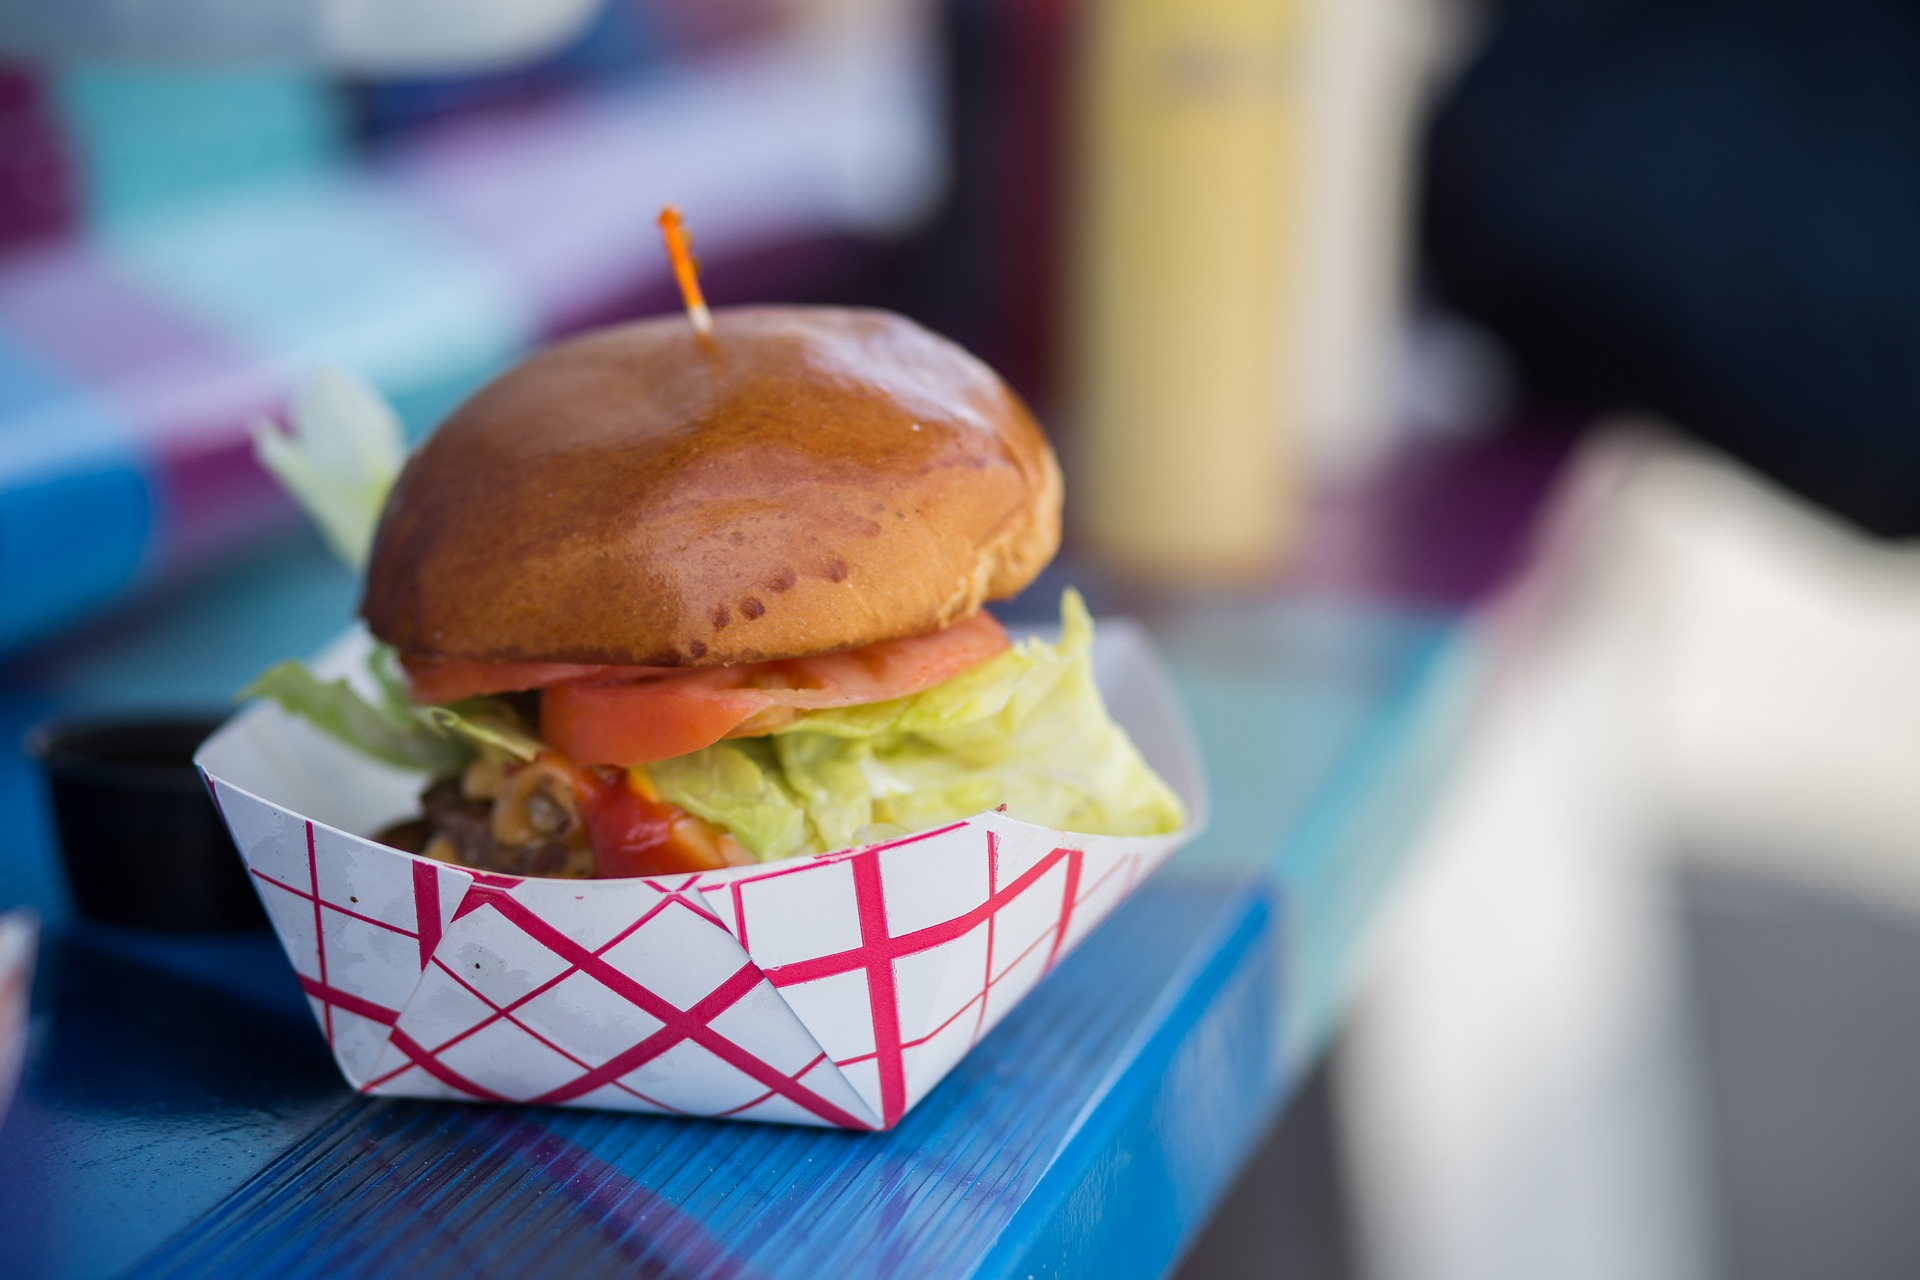 Court Affirms City's Food Truck Distance Rules